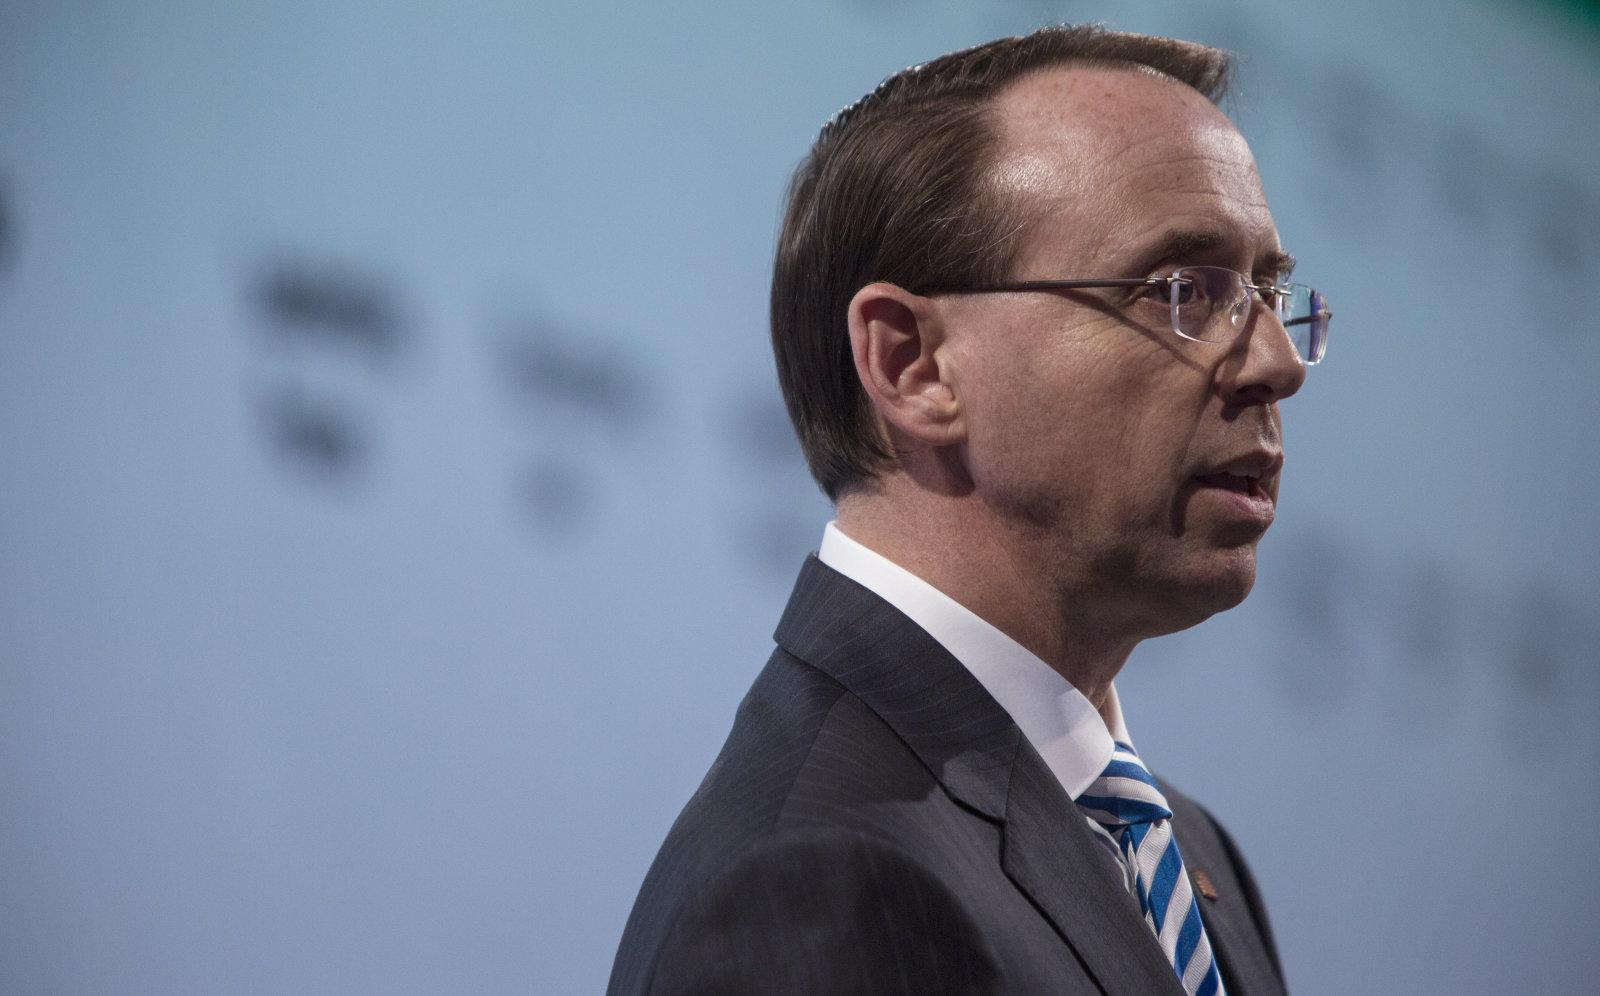 If the US Justice Department stays true to its new policy, we'll hear about